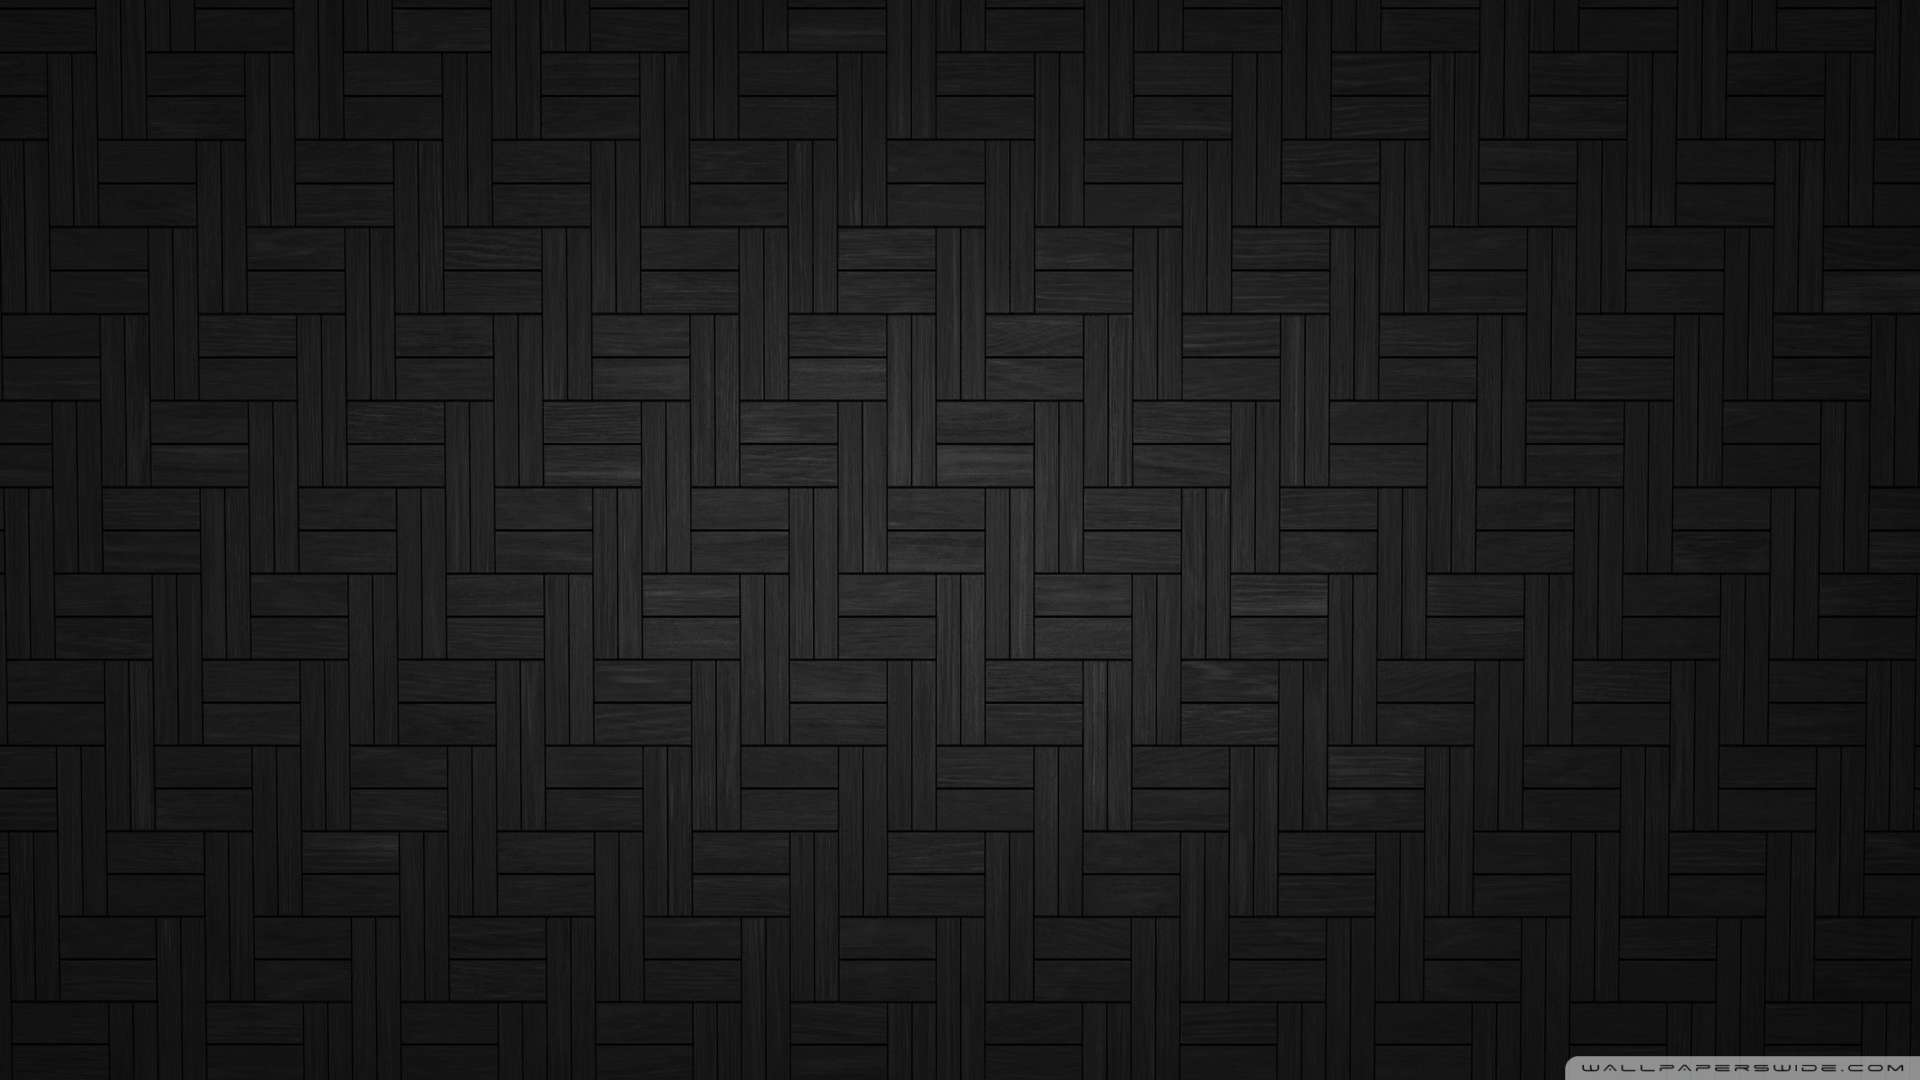 1080P Black Wallpaper - WallpaperSafari